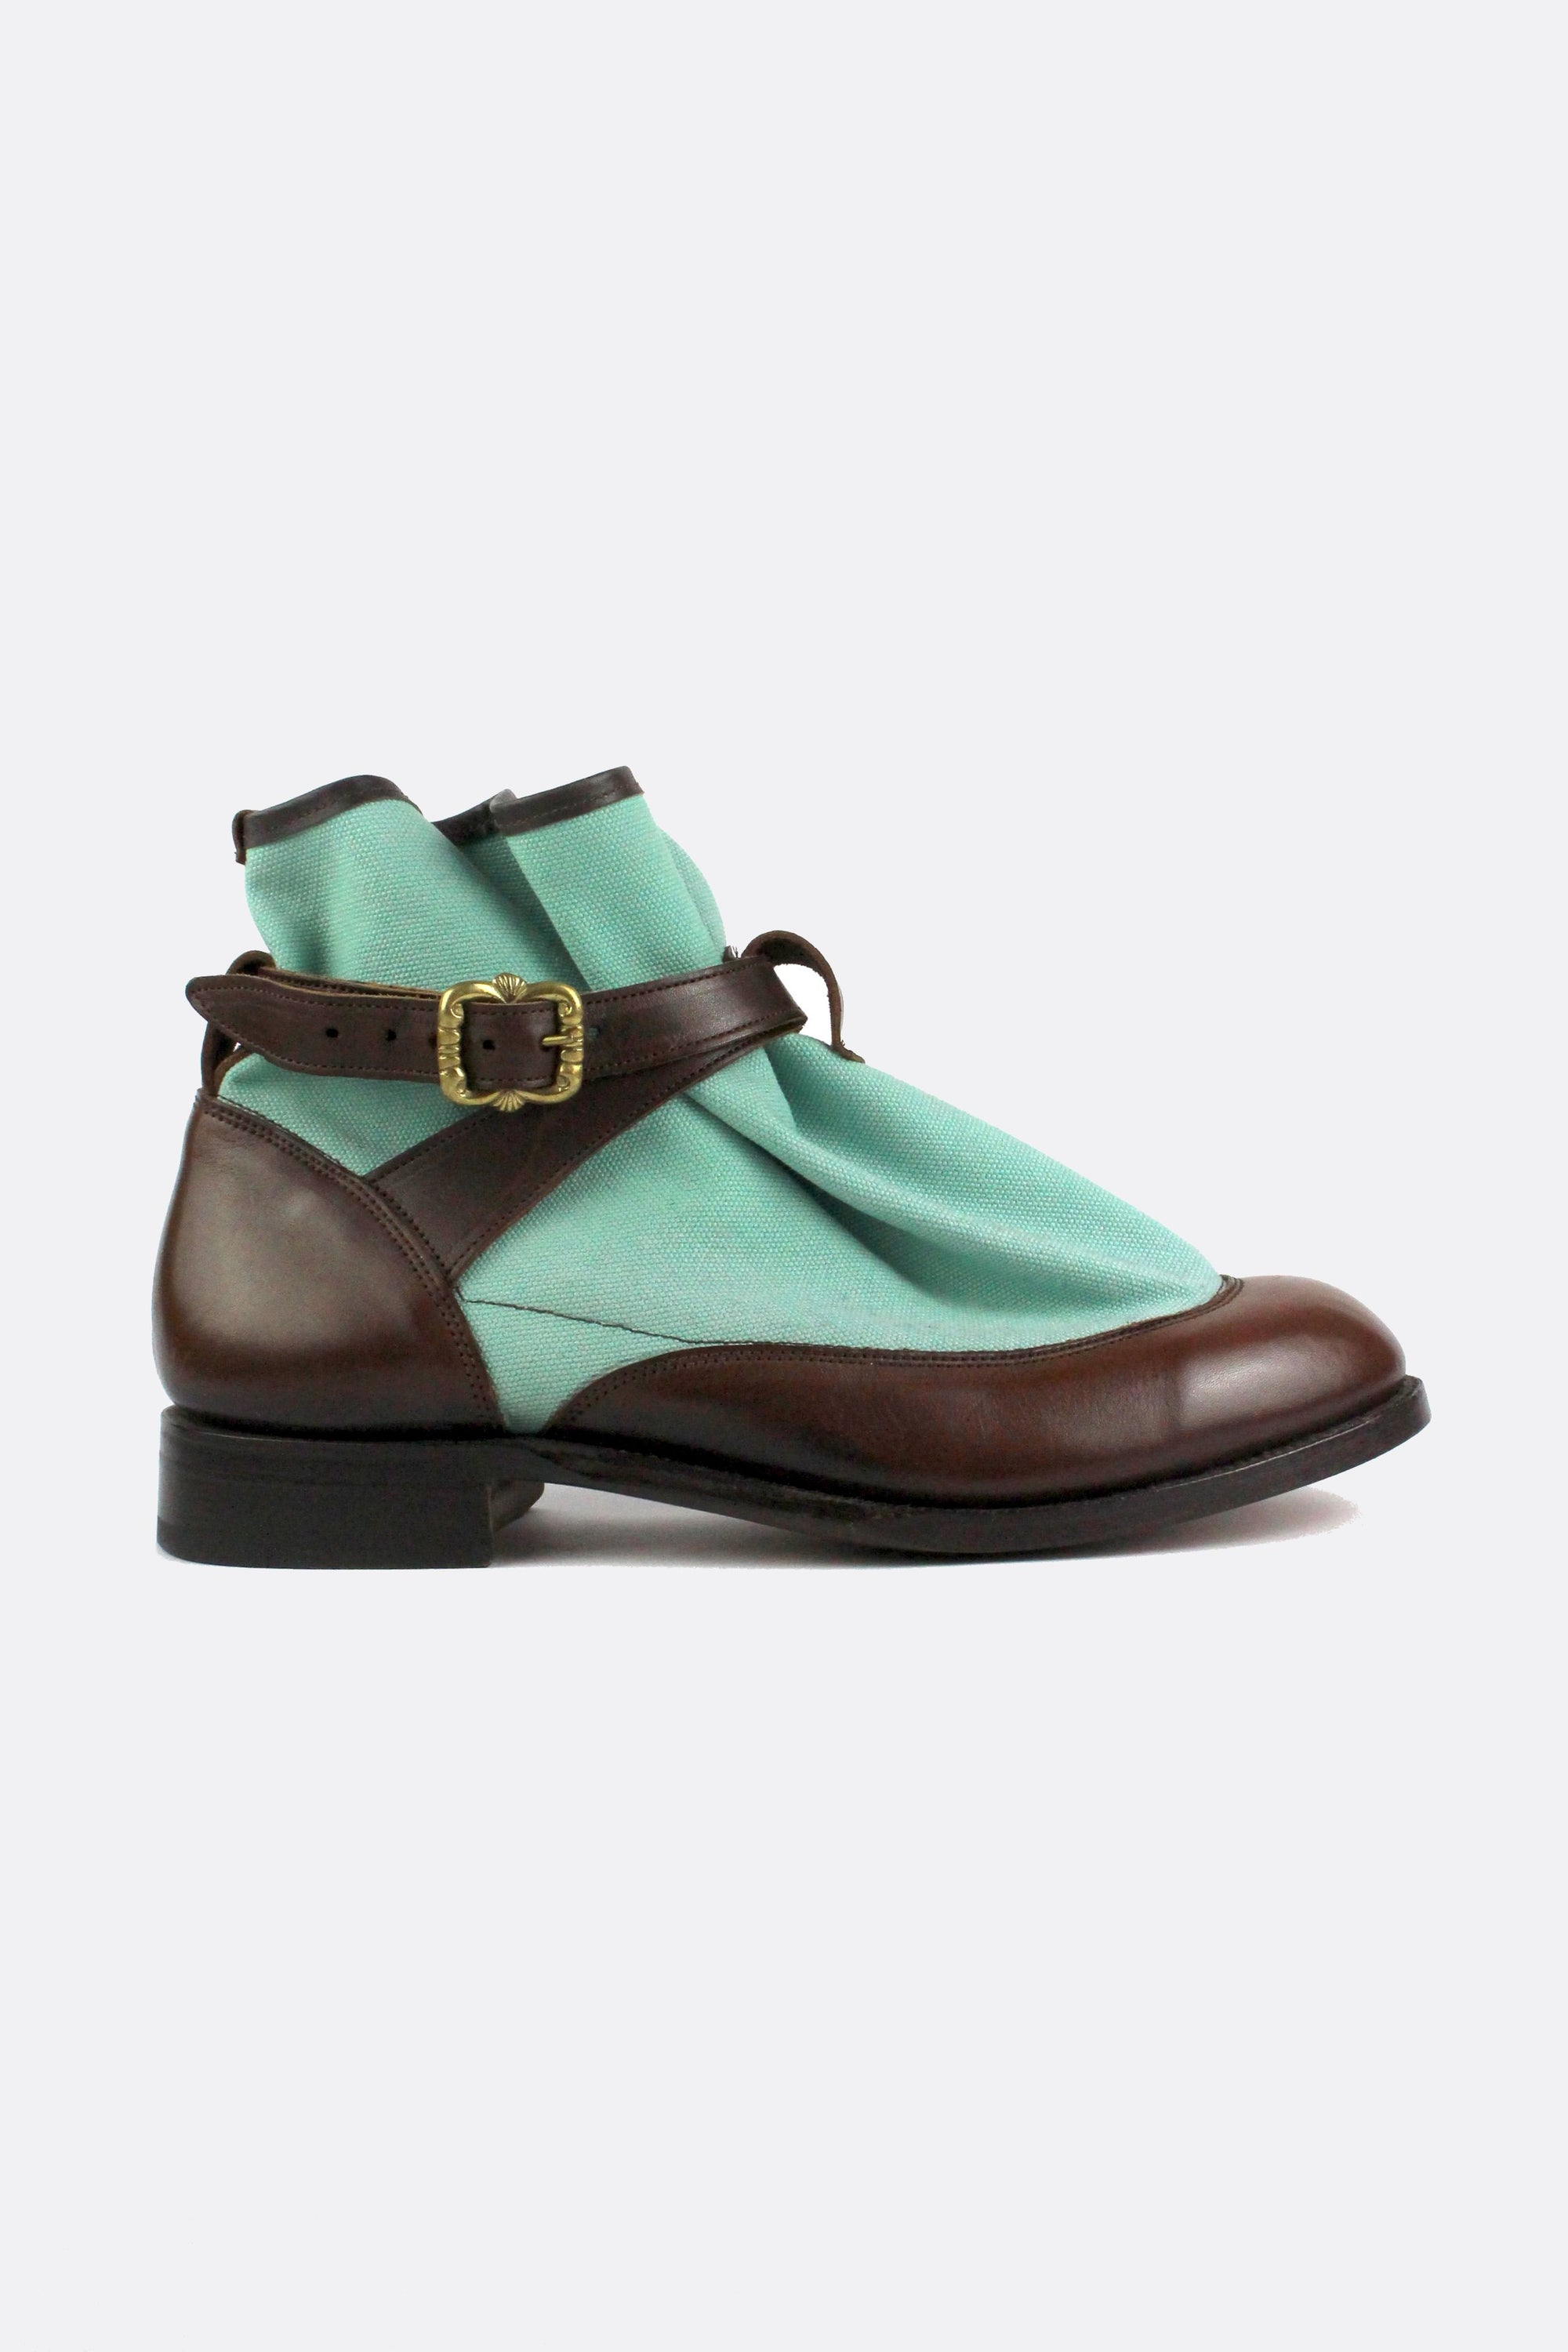 TRICKER'S HIGHPAD BOOTS TURQUOISE-shoes-A Child Of The Jago